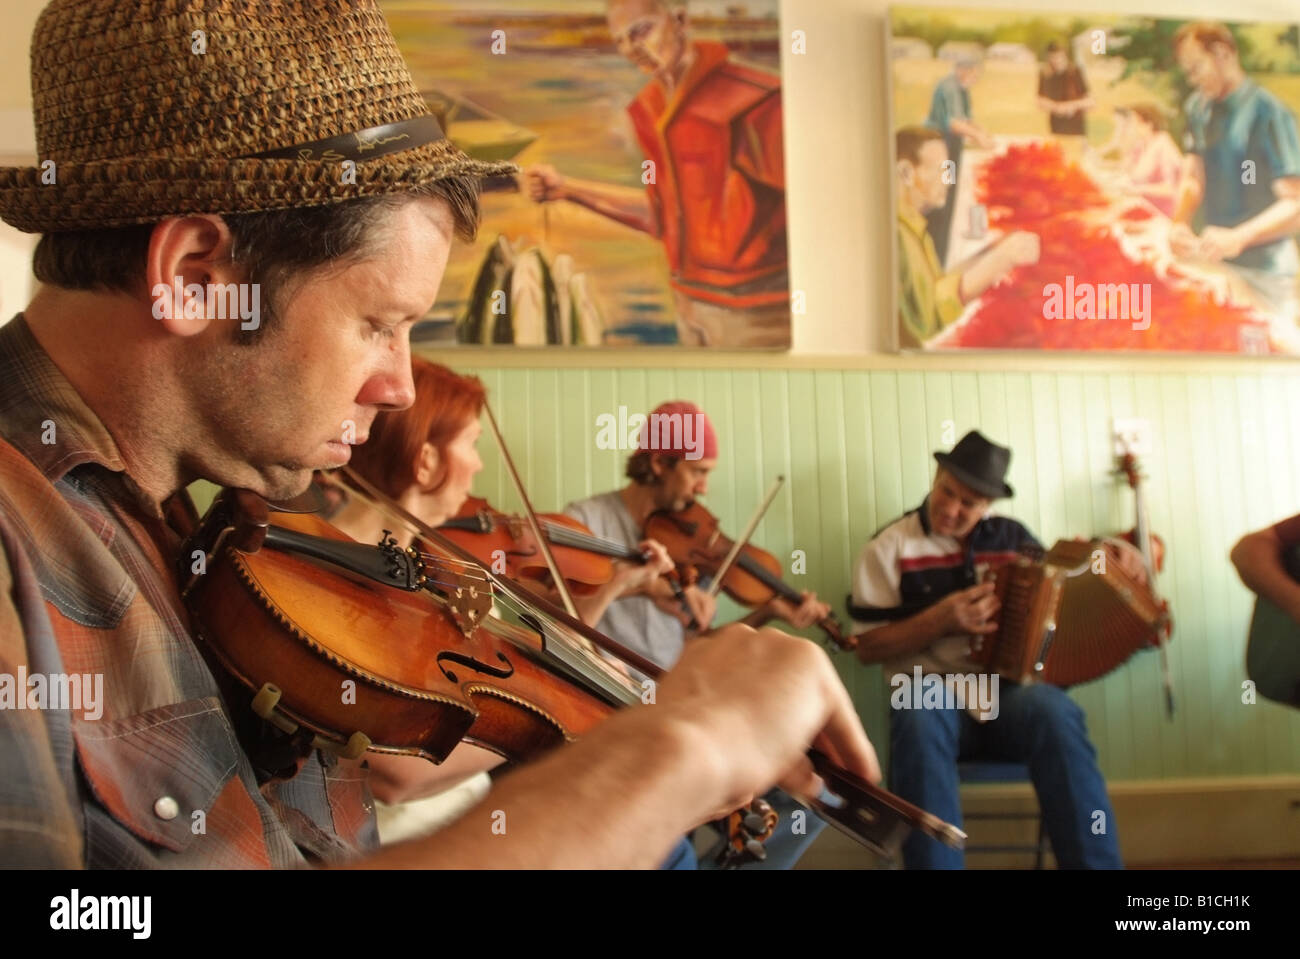 usa-louisiana-la-cajun-country-breaux-bridge-cajun-music-jam-session-B1CH1K.jpg